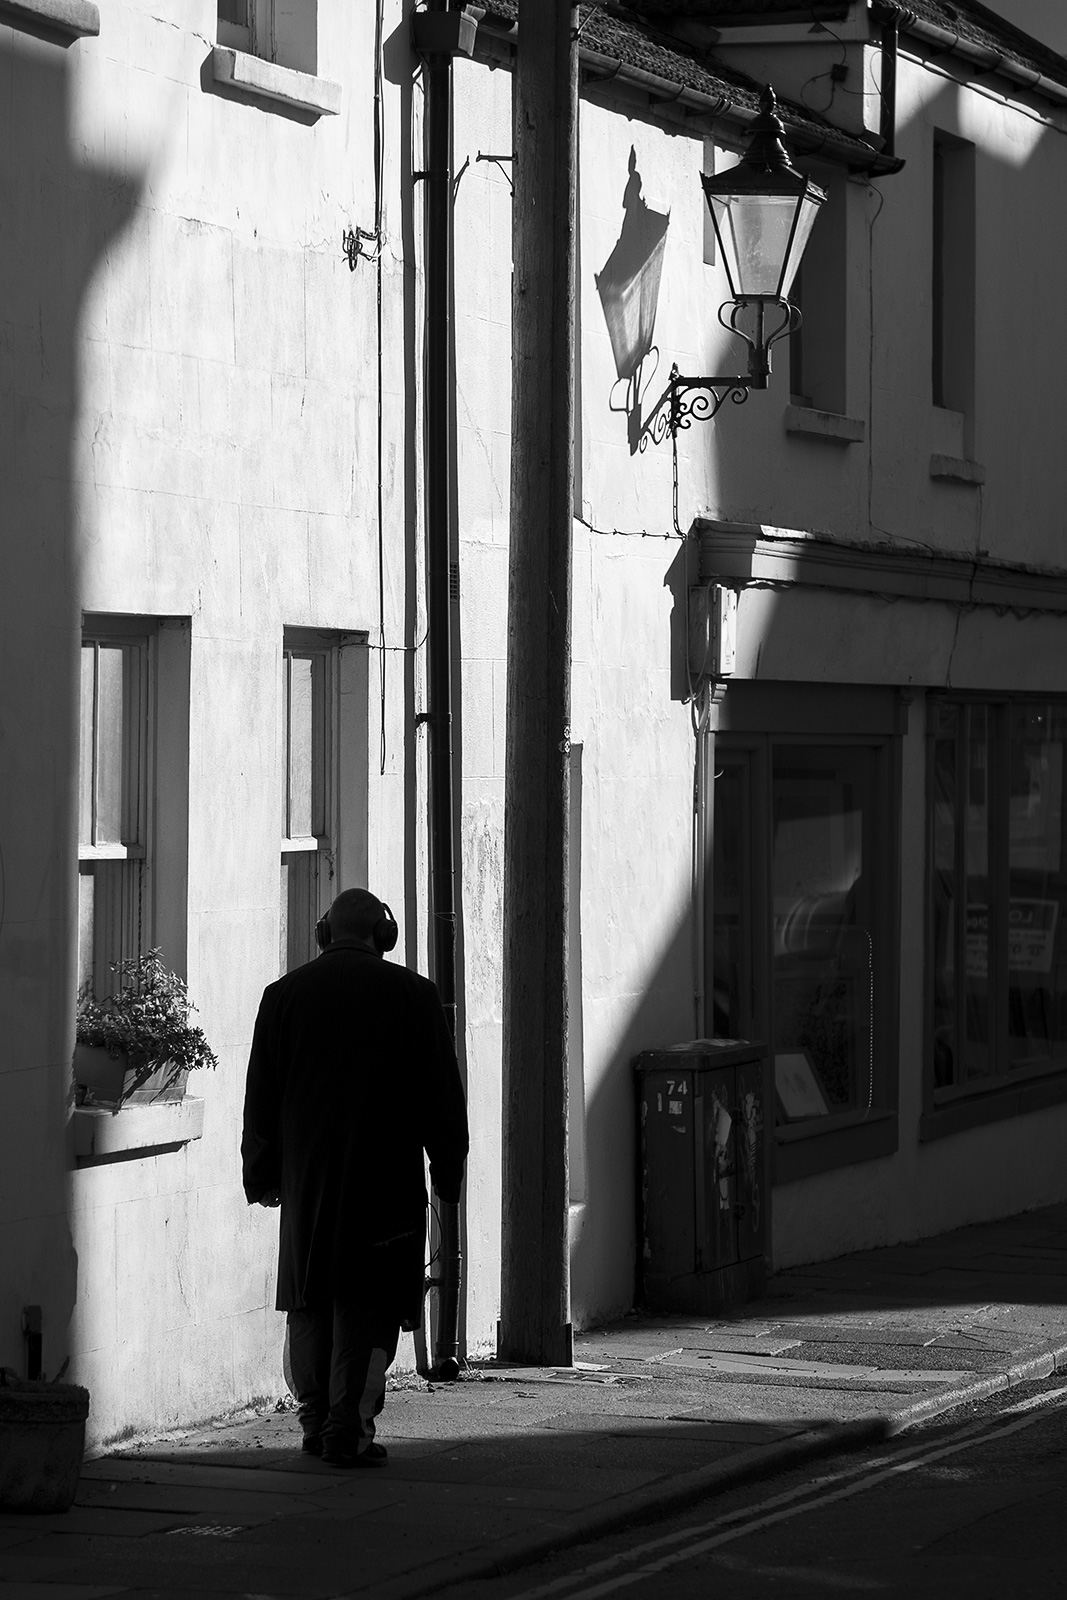 Silhouetted man with headphones walking away into sunlit street with victorian lamp on wall, Queen's Gardens Brighton UK black and white documentary street photography portrait ©P. Maton 2019 eyeteeth.net